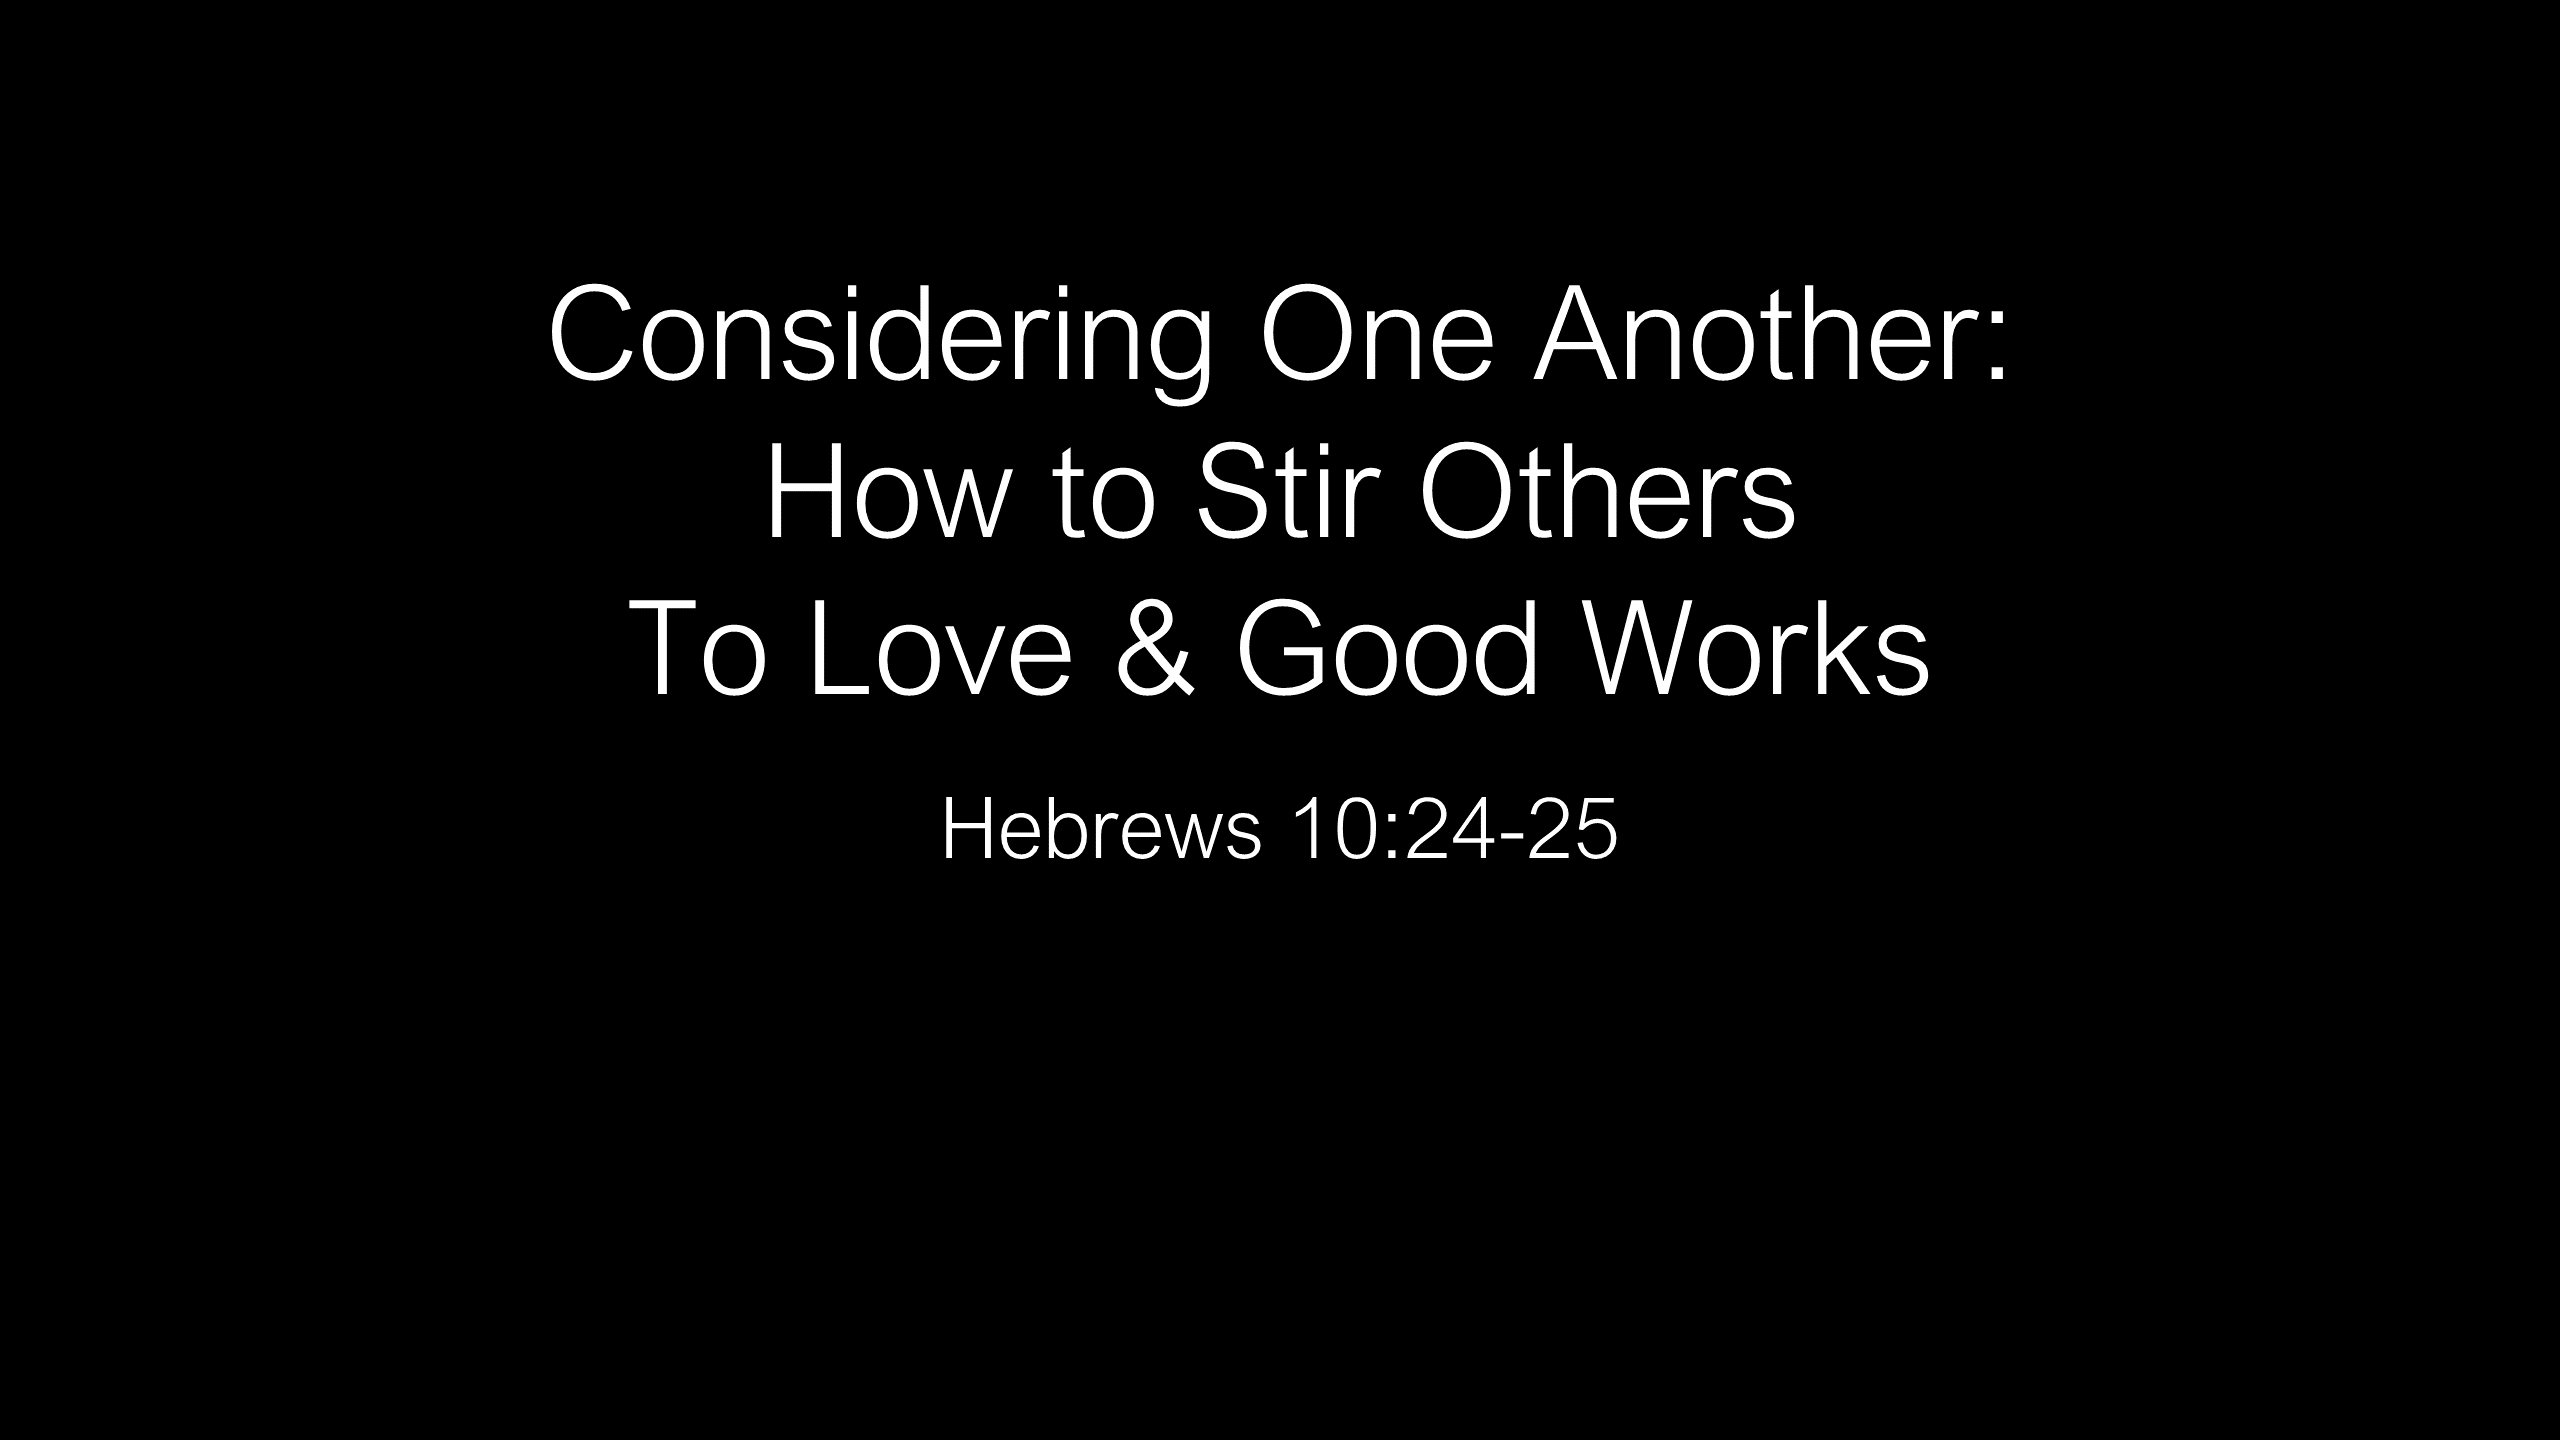 WCC-08 - Considering One Another - How to Stir Others To Love & Good Works (1)